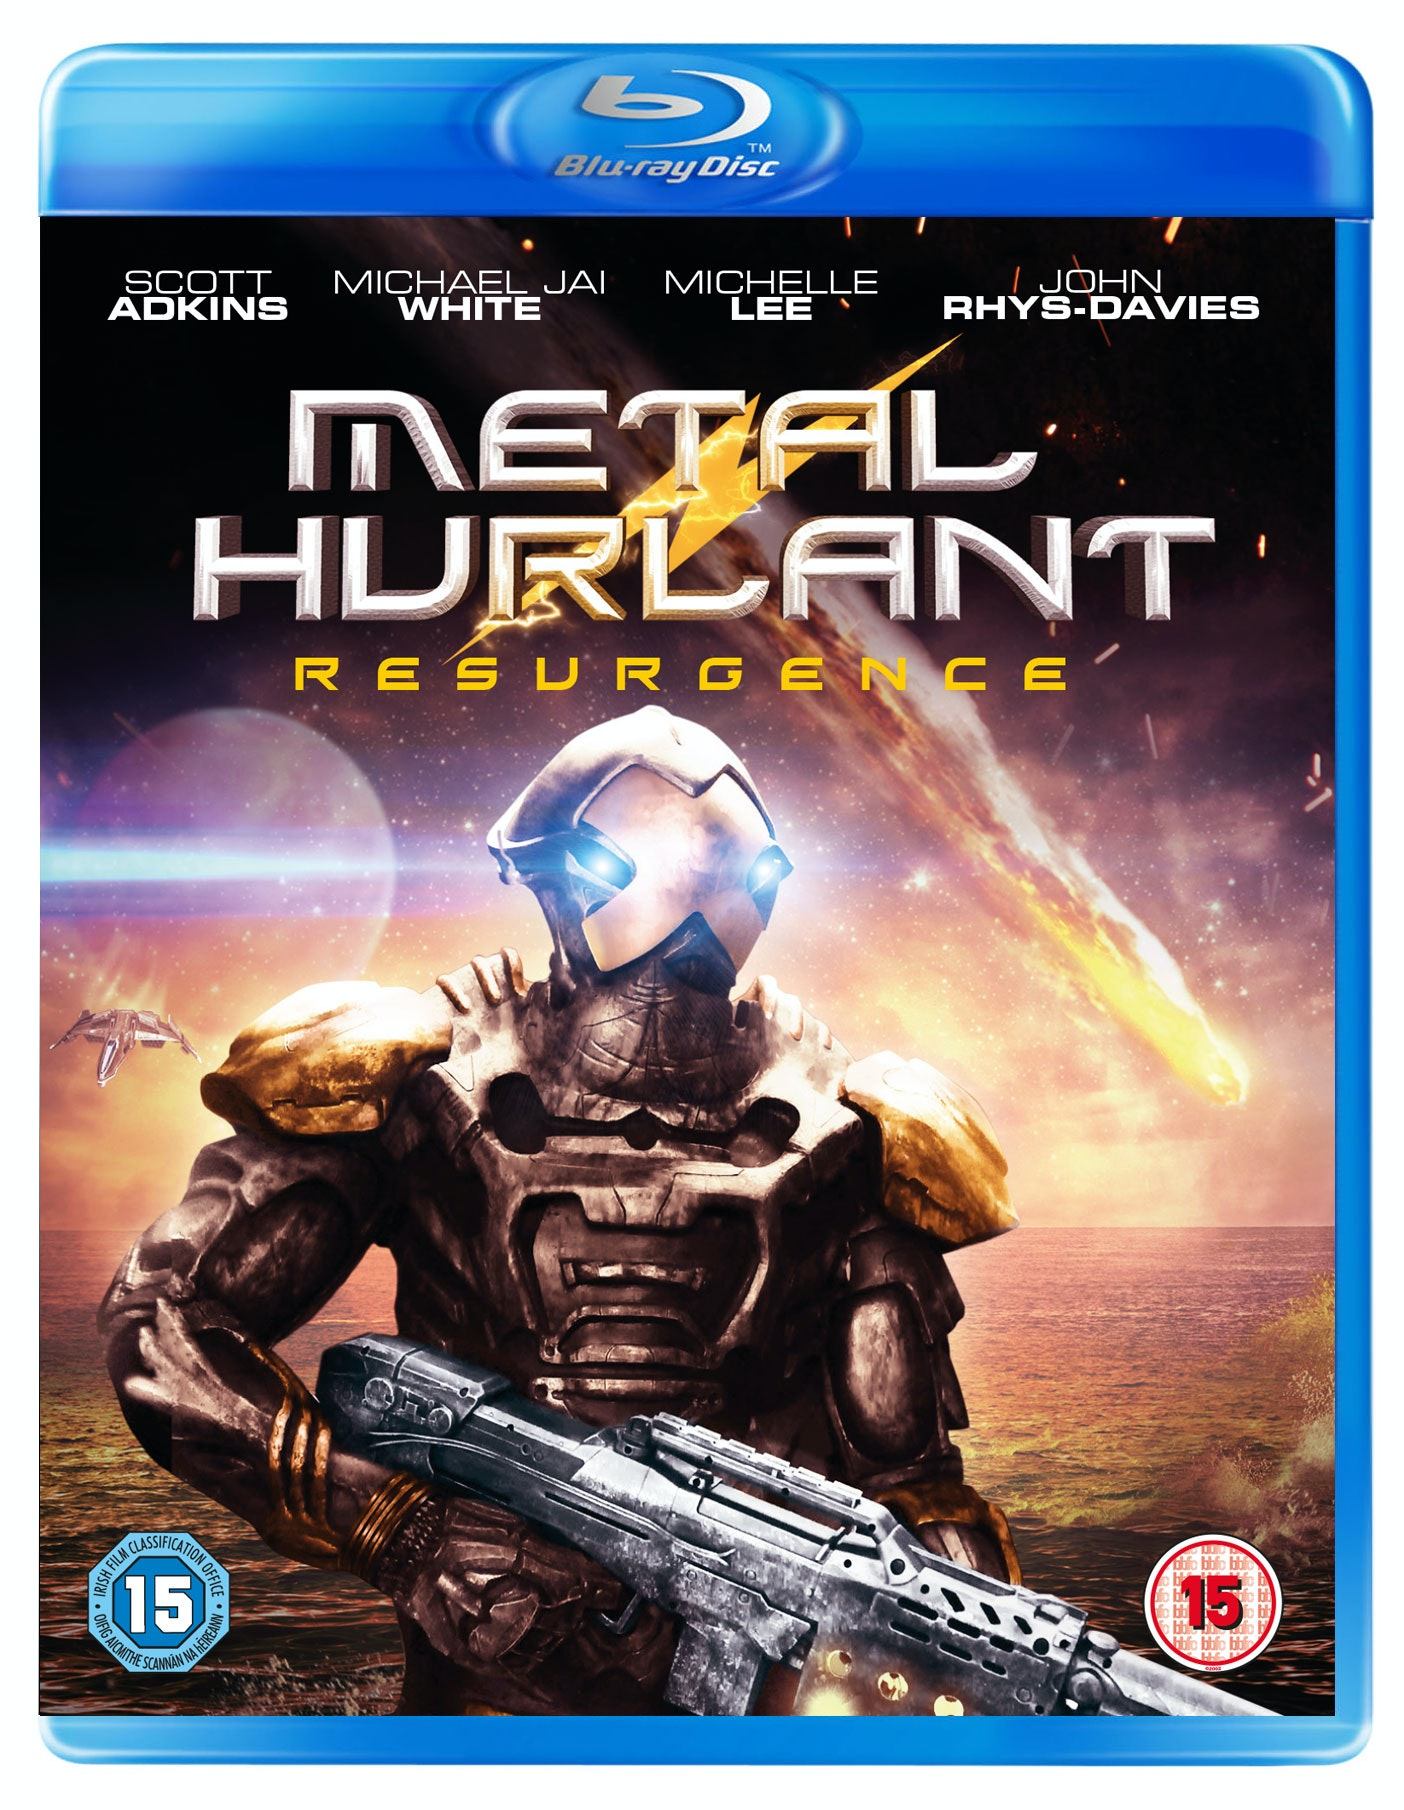 Metal Hurlant: Resurgence Blu-ray sweepstakes